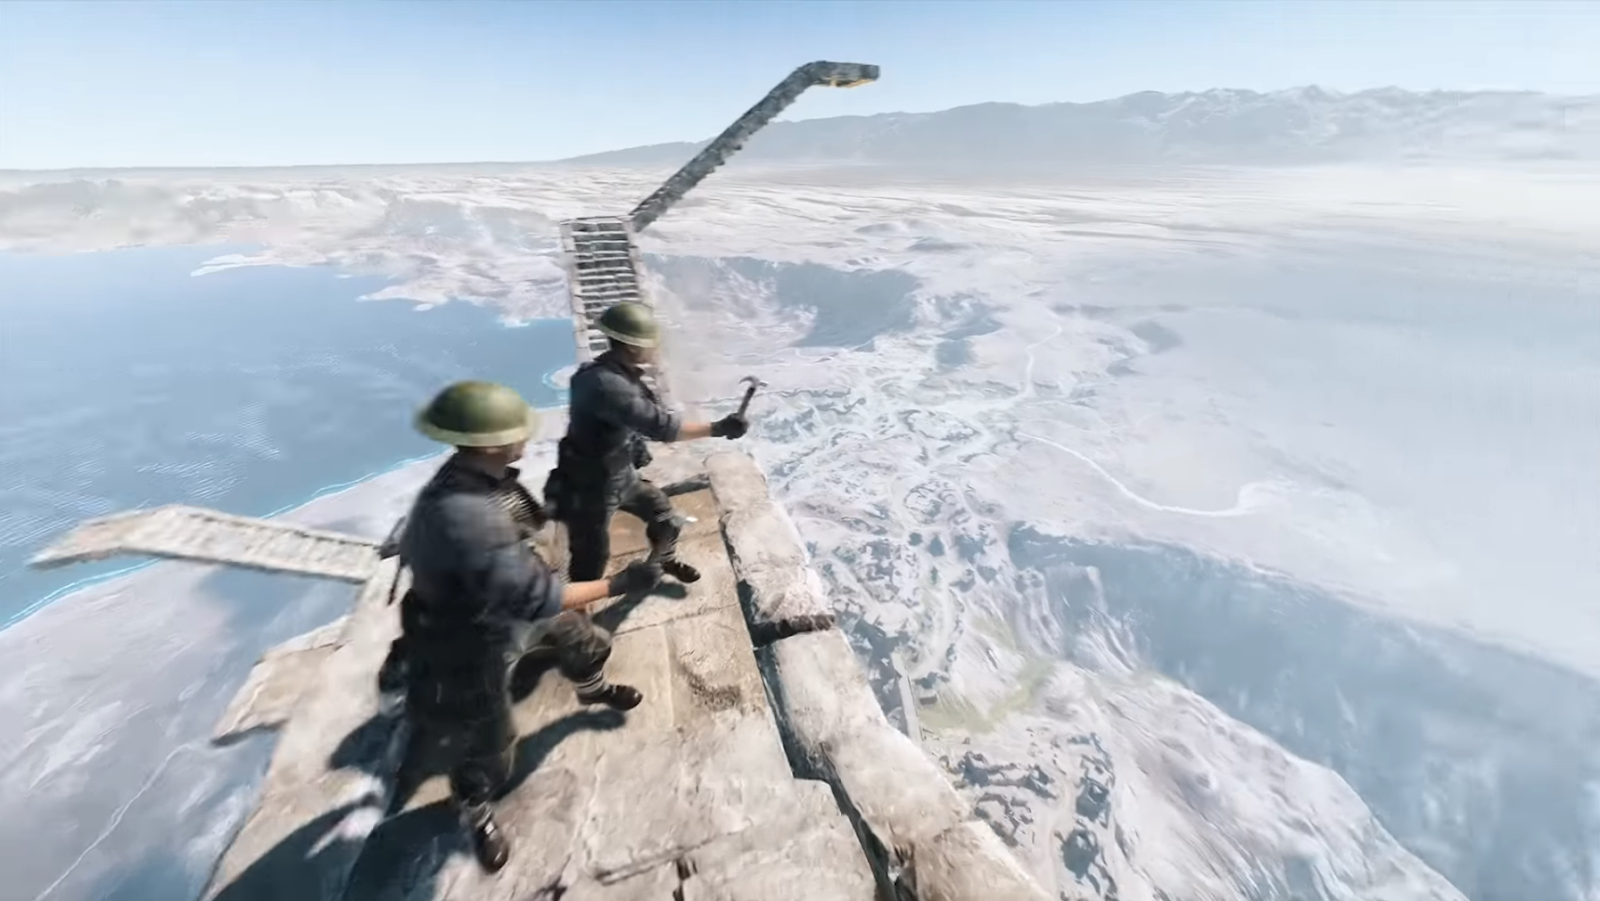 New Battlefield V Easter Egg Makes Players Build A Stairway Into The Sky